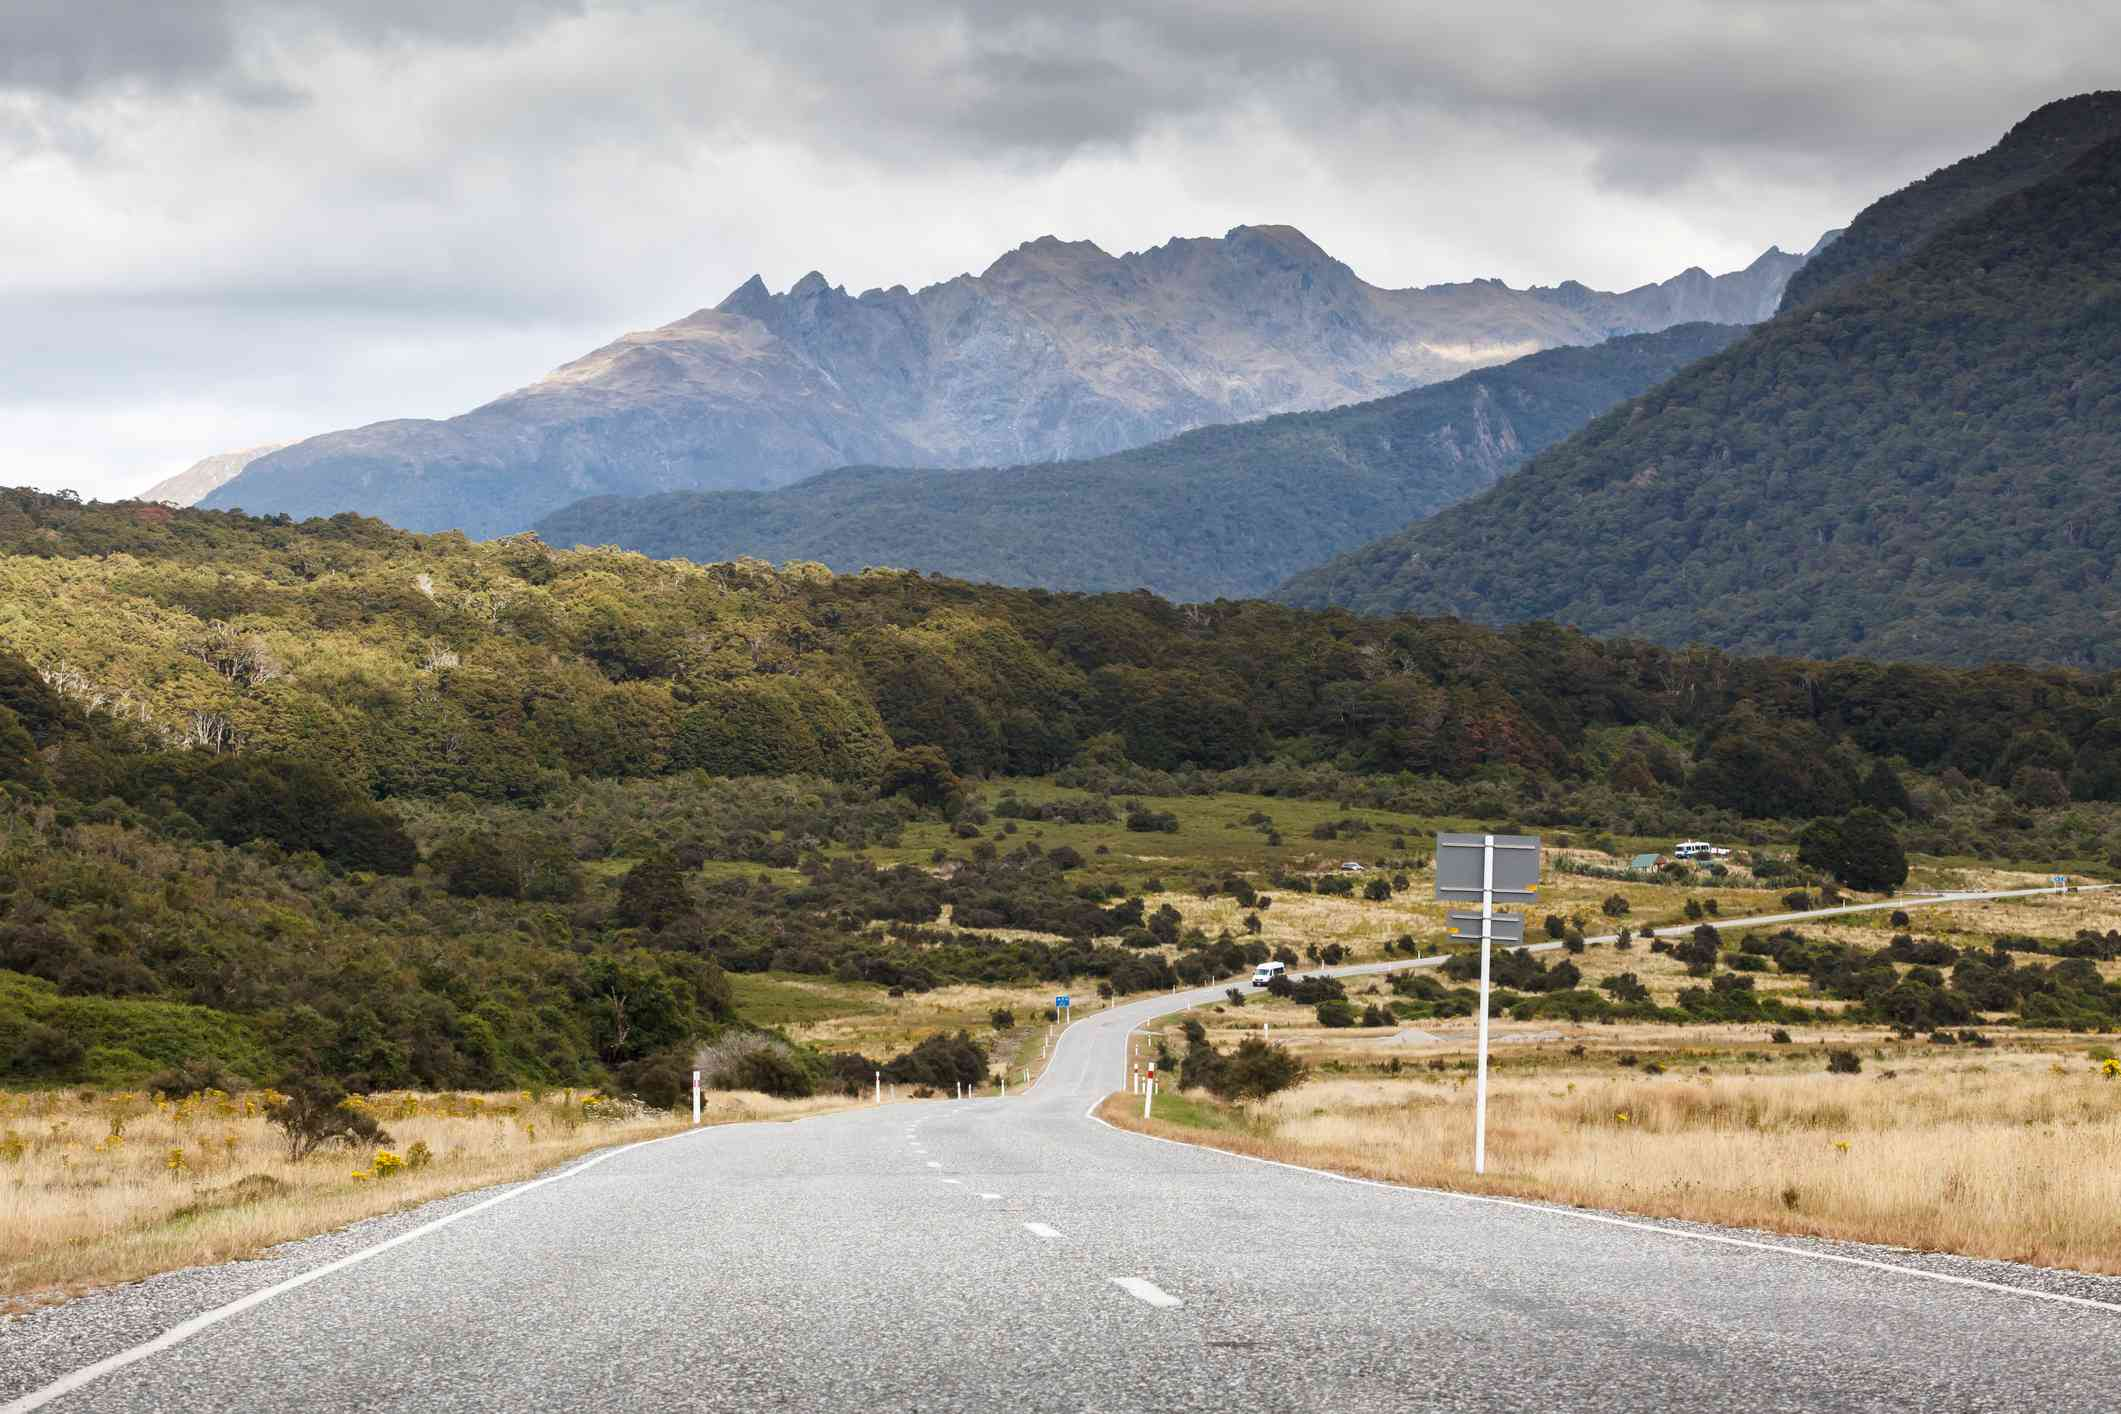 mountains with a two-lane road leading towards it